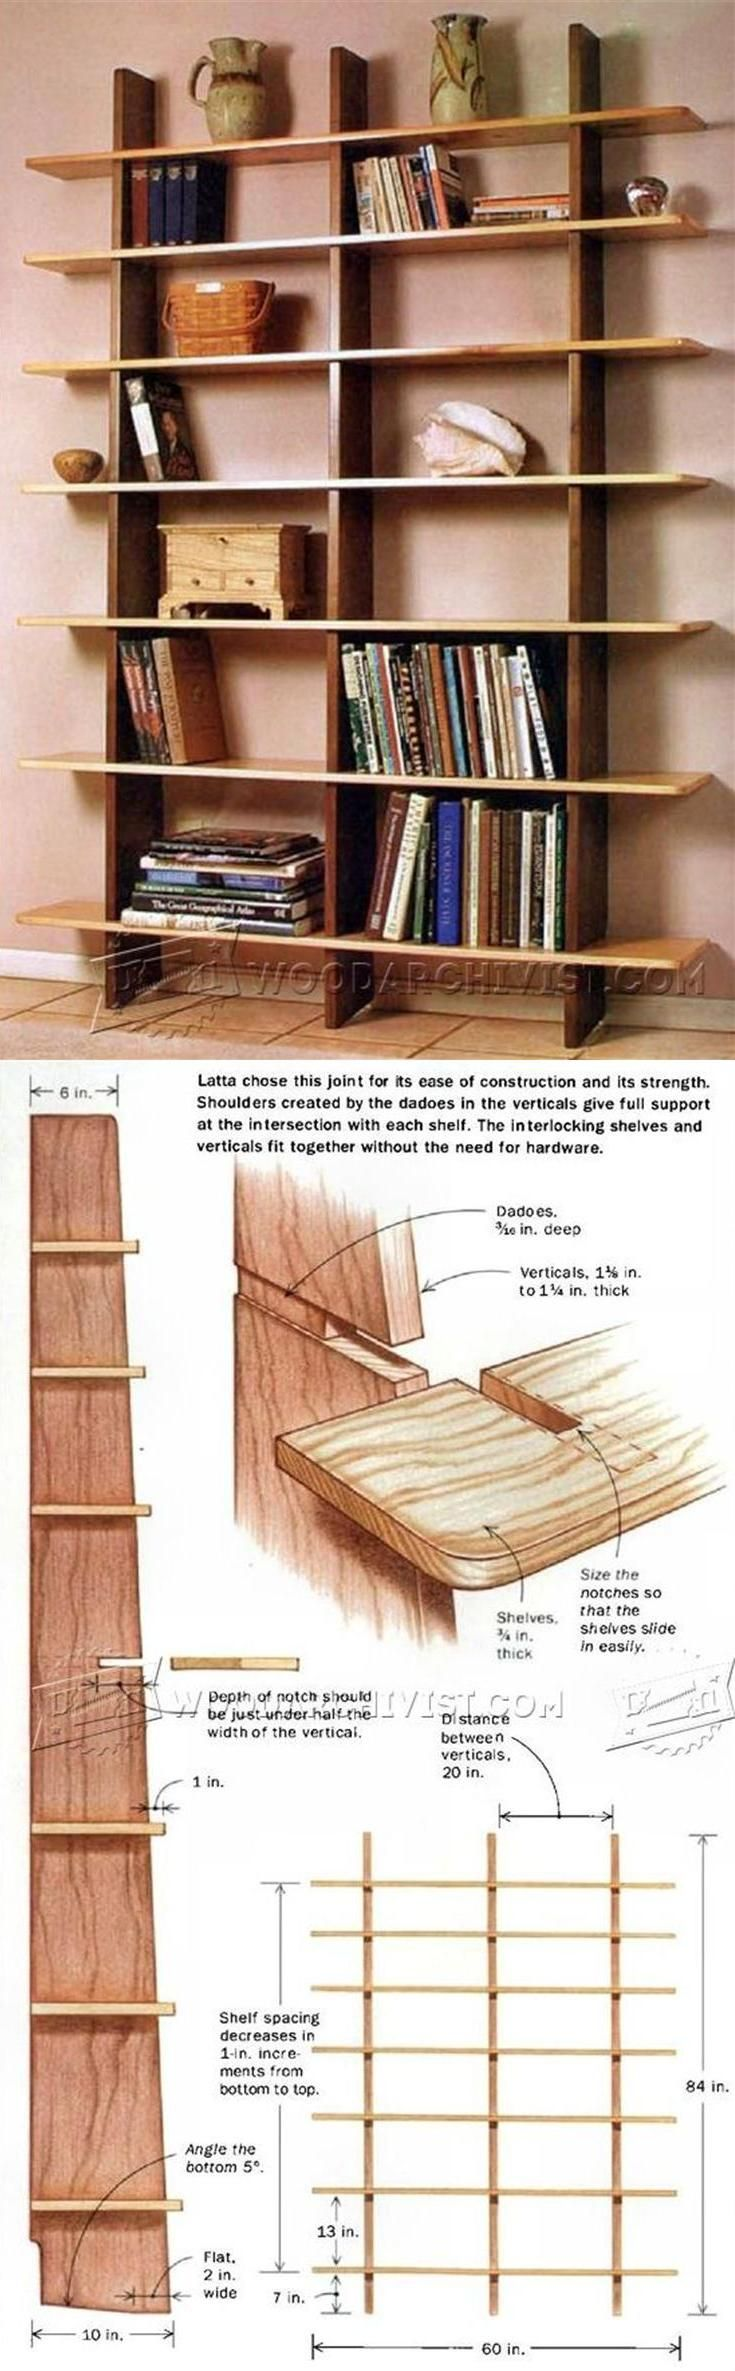 Design homemade dining table plans diy ideas 187 woodplans woodplans - Find This Pin And More On Furniture Plans